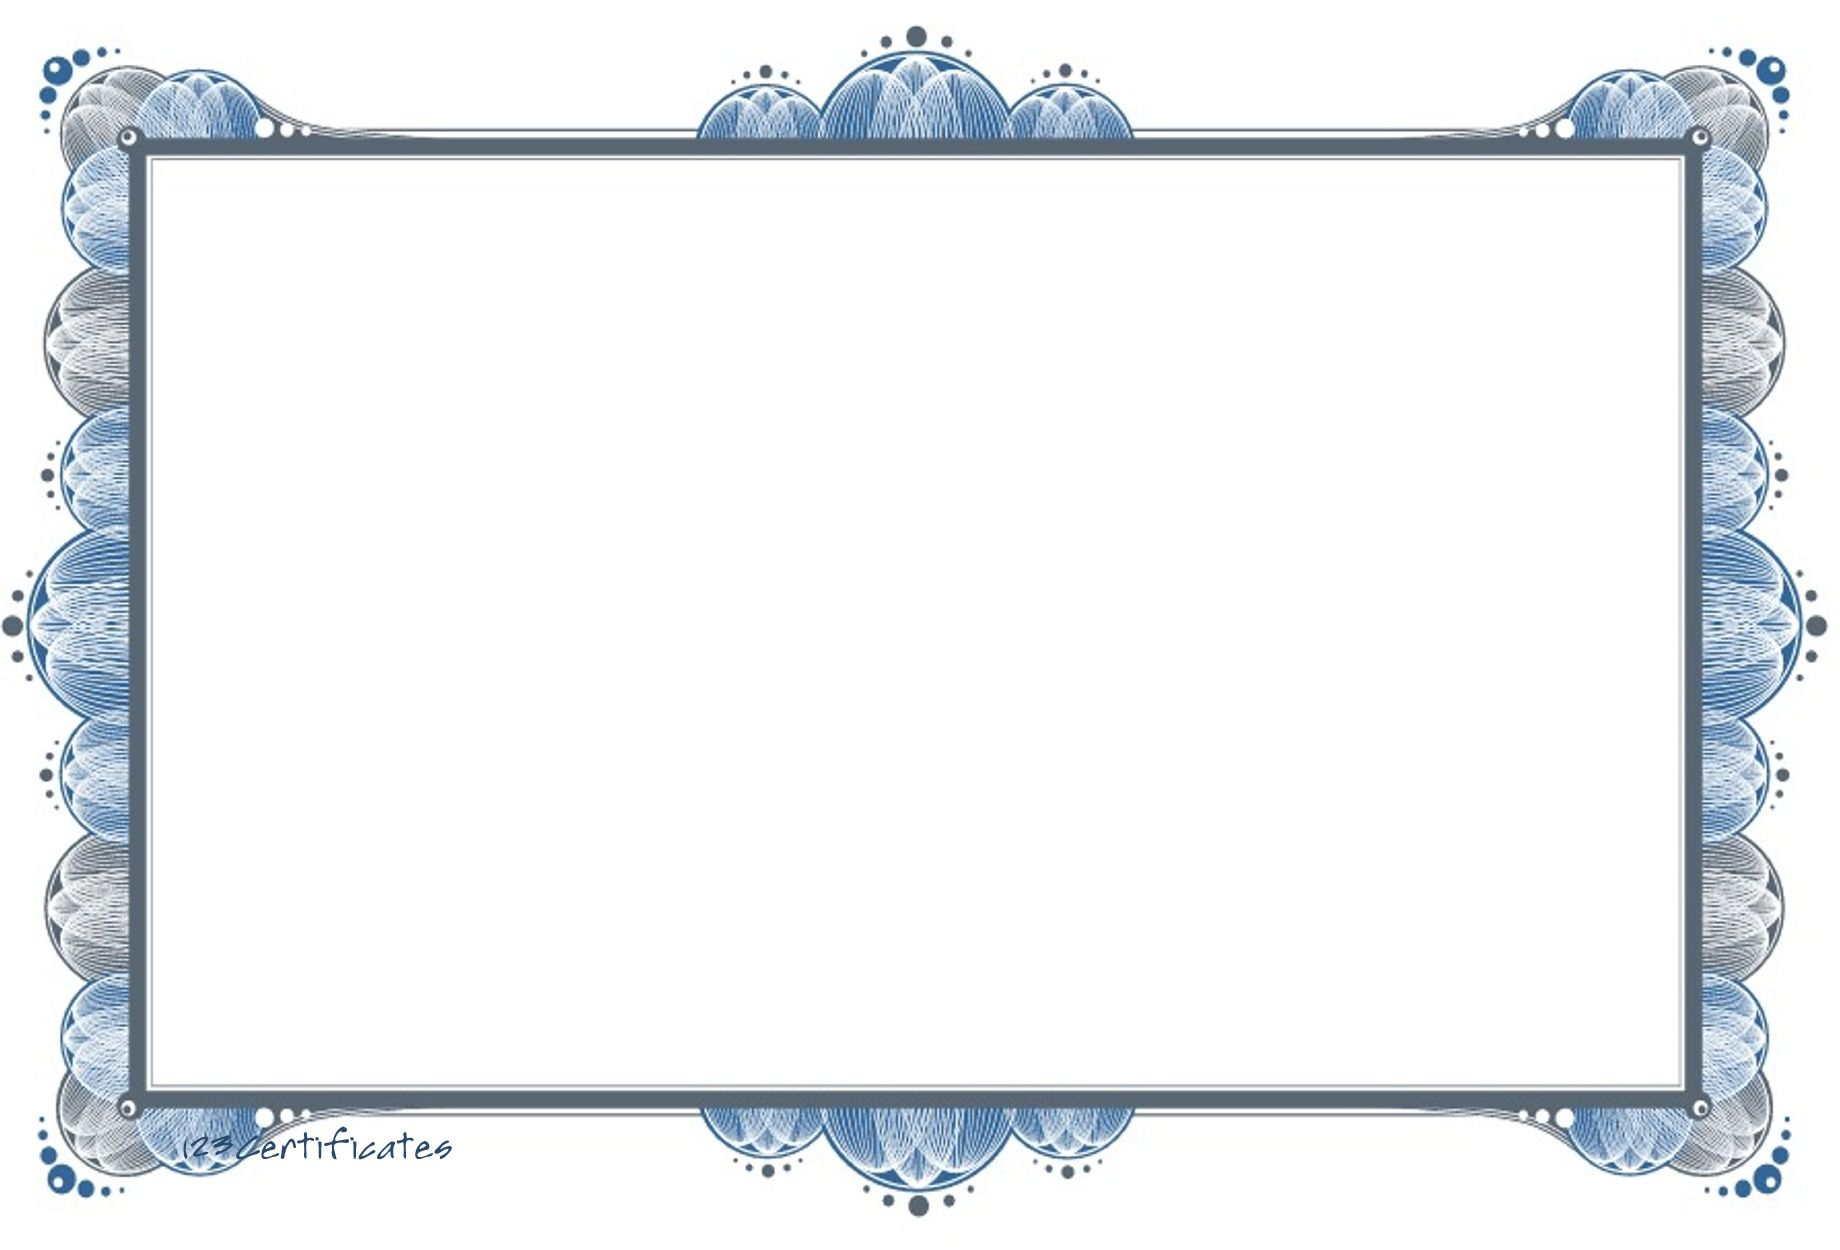 Printable Award Certificates Blank Free Certificate Border Artwork Background Templates